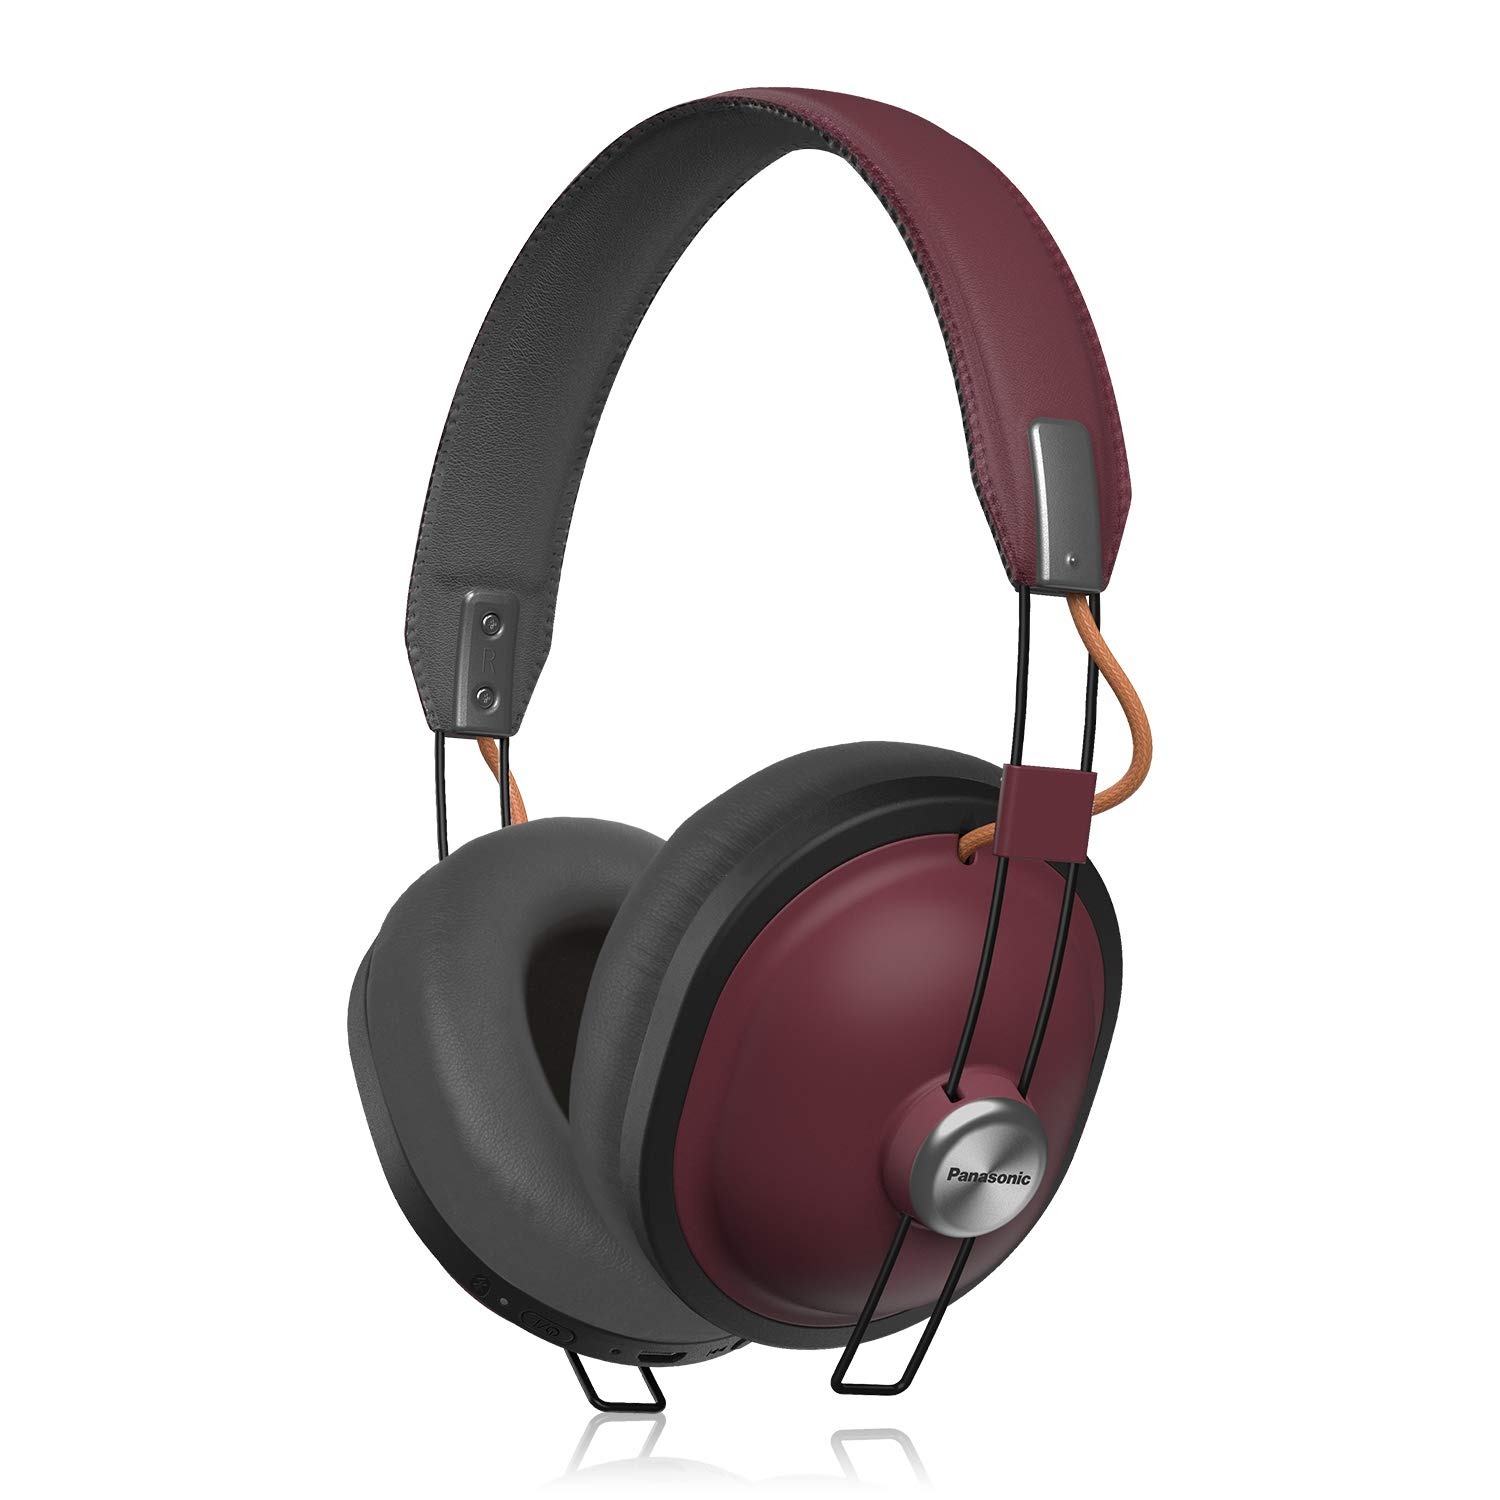 Panasonic Retro Bluetooth Wireless Headphone With Microphone, Deep Bass Enhancer, 24 Hours Playback - RP-HTX80B-R (Sangria)